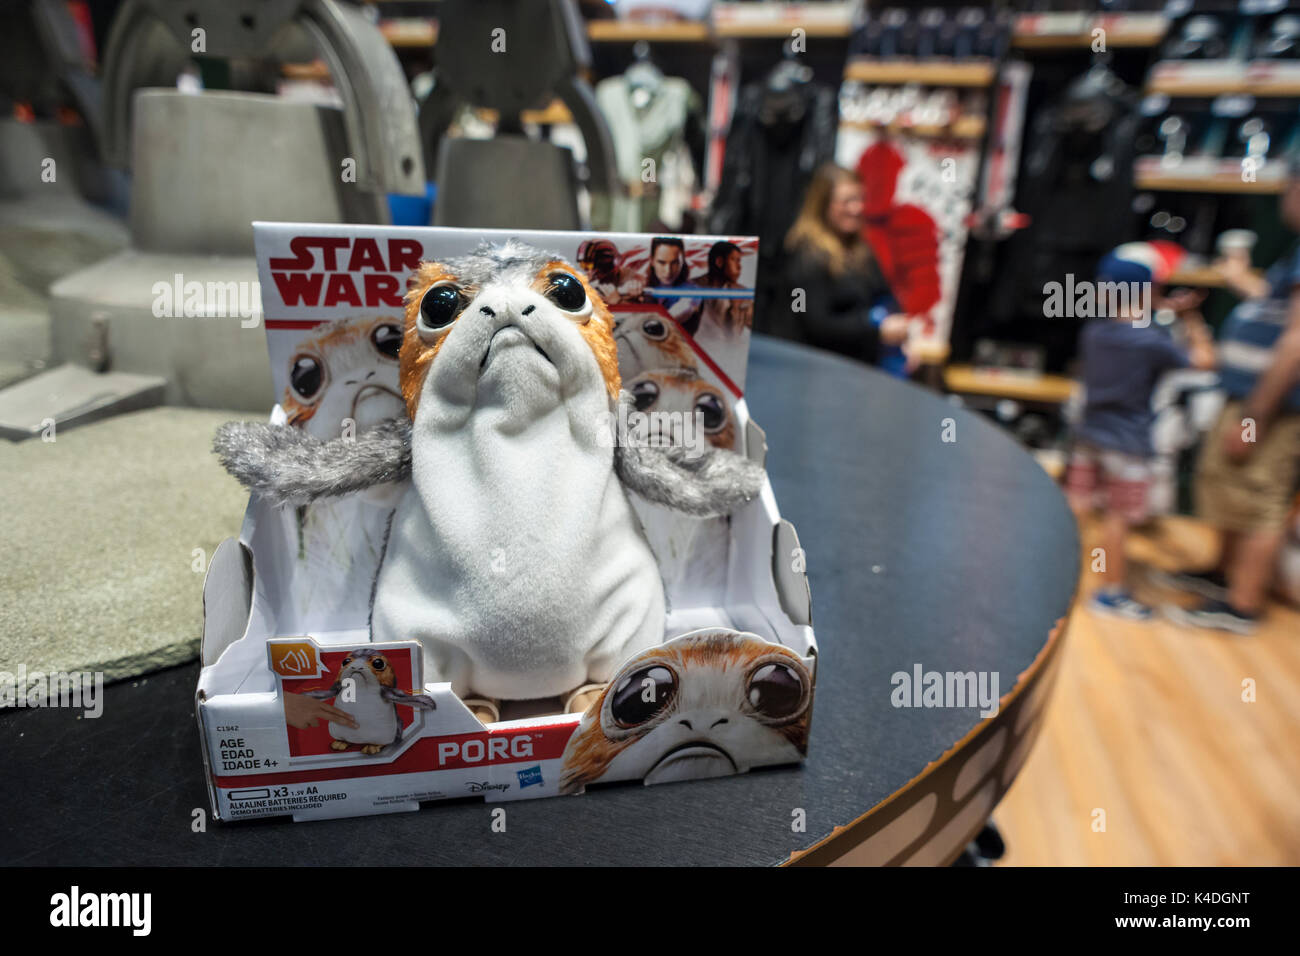 Star Wars merchandise in the Disney store in Times Square in